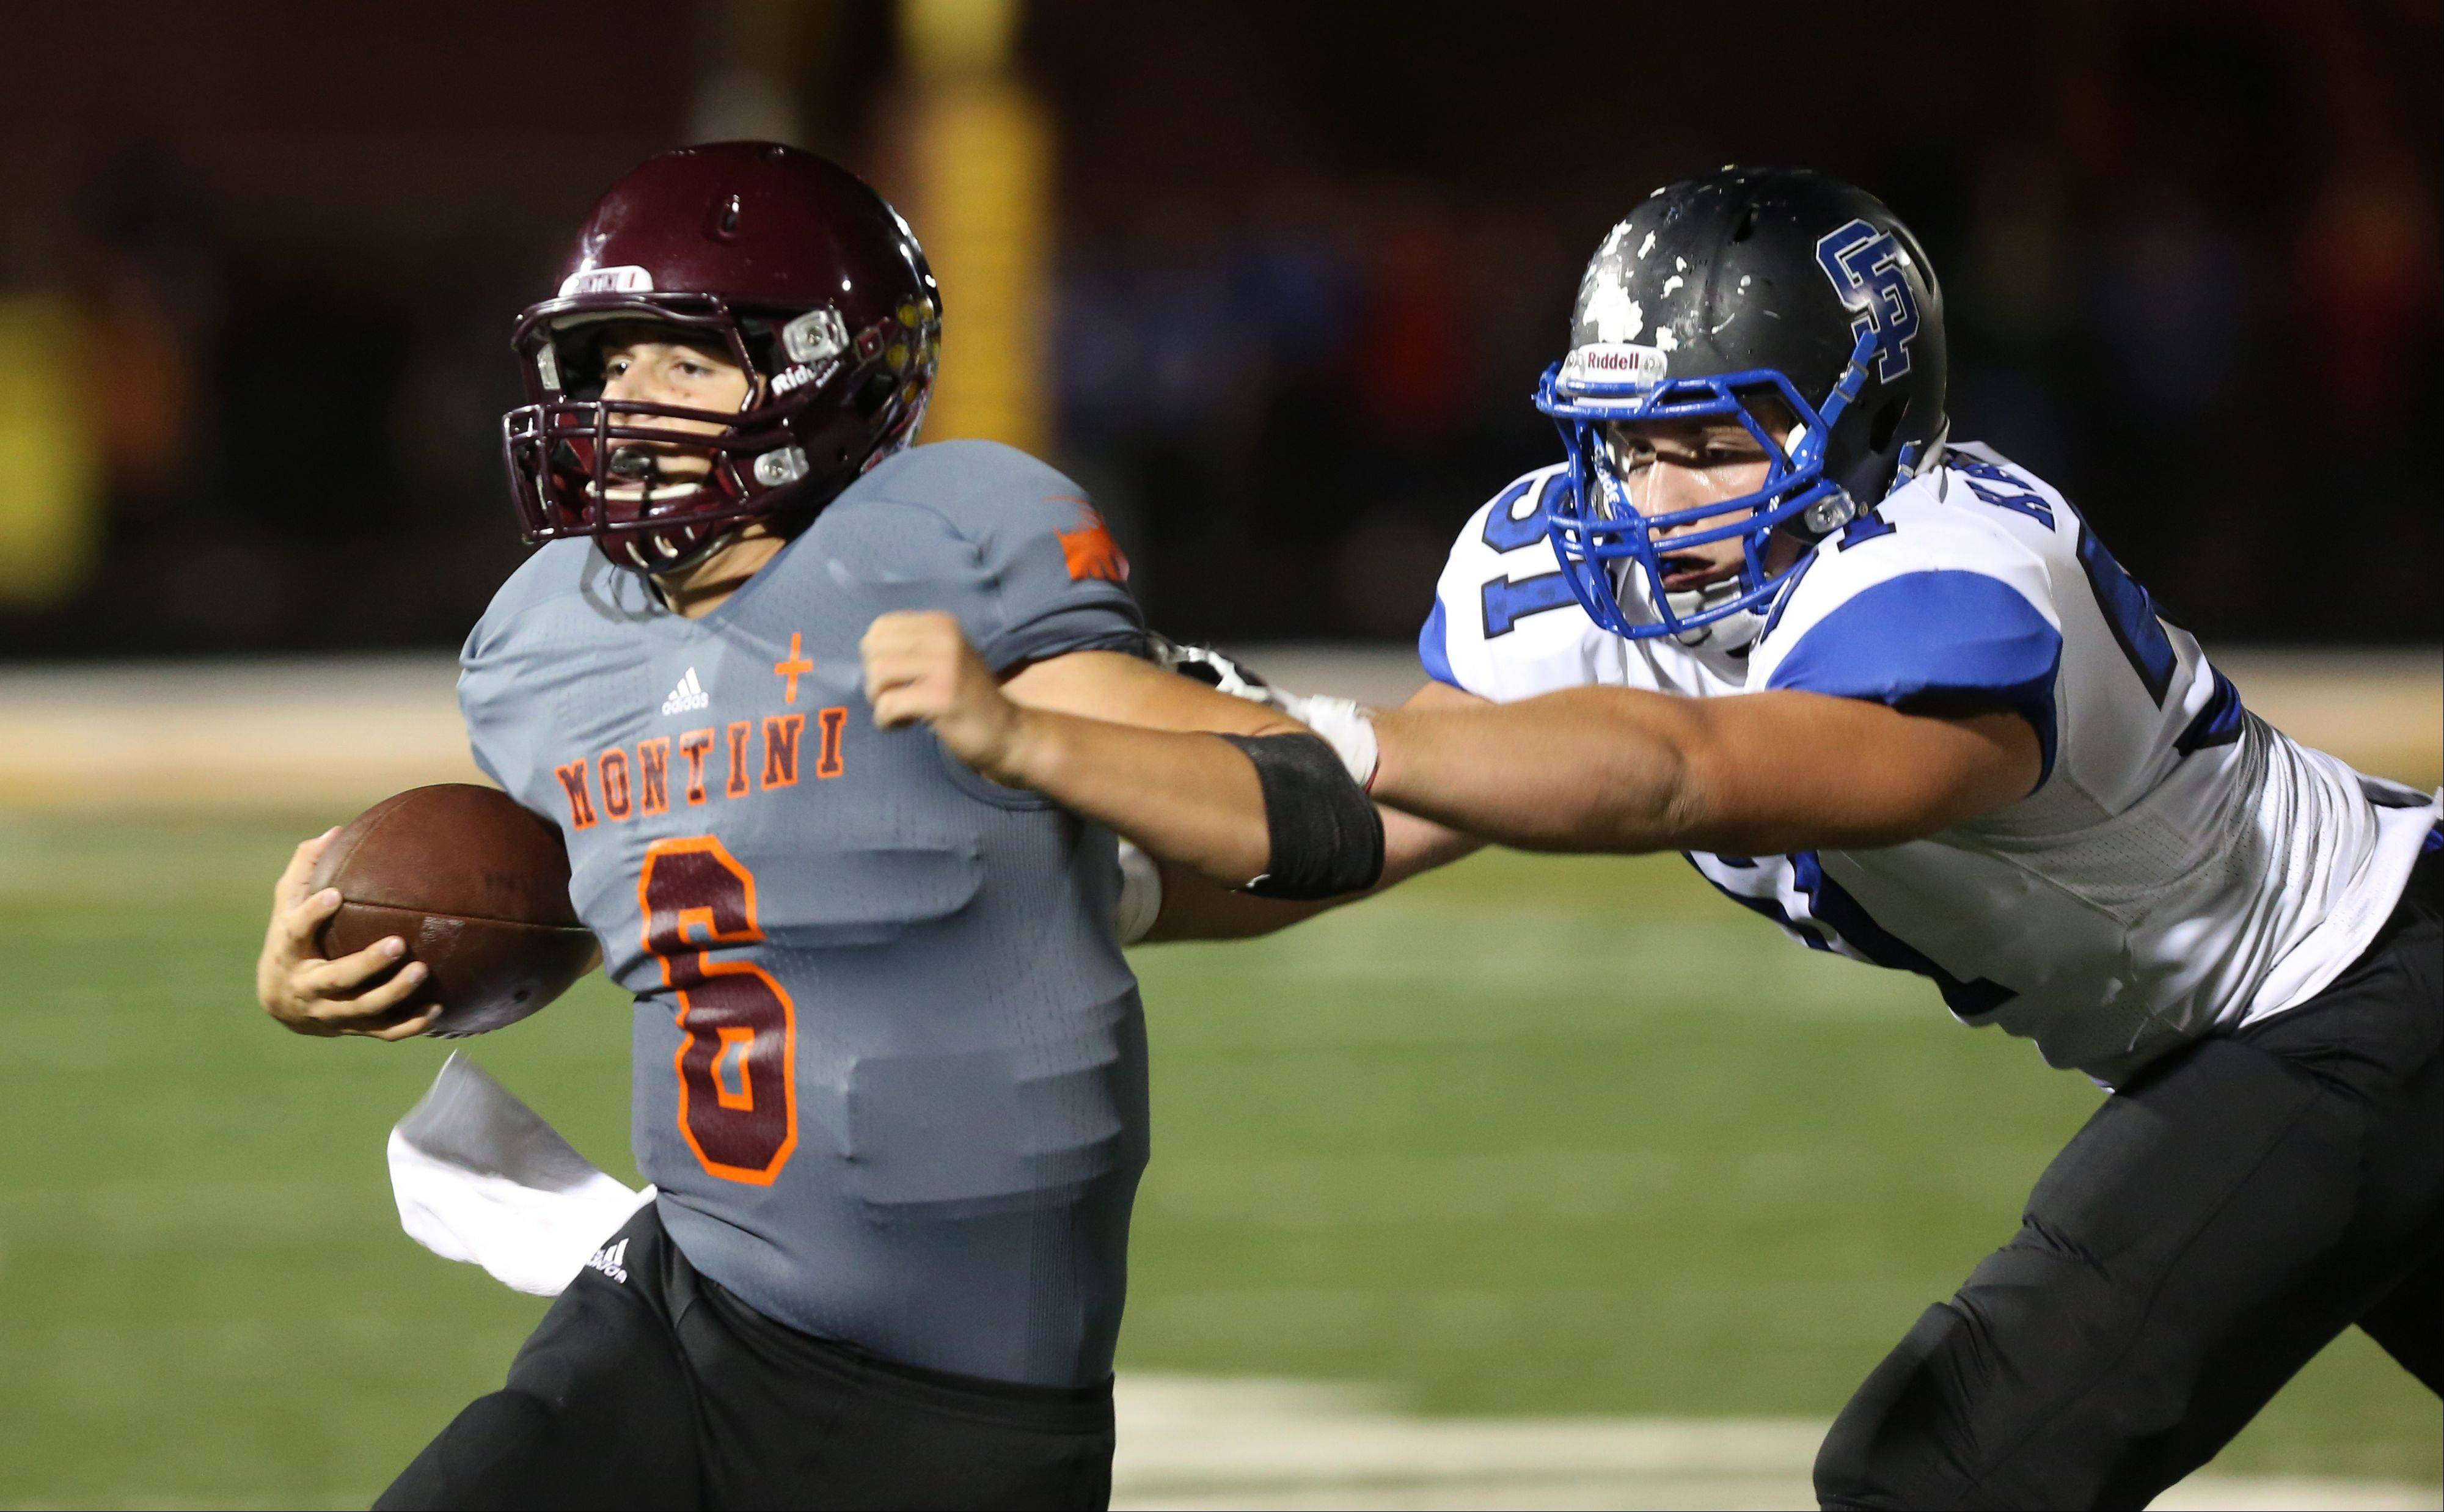 Montini quarterback Alexander Wills, left, is pursued by St. Francis' James Kalfas Friday night.